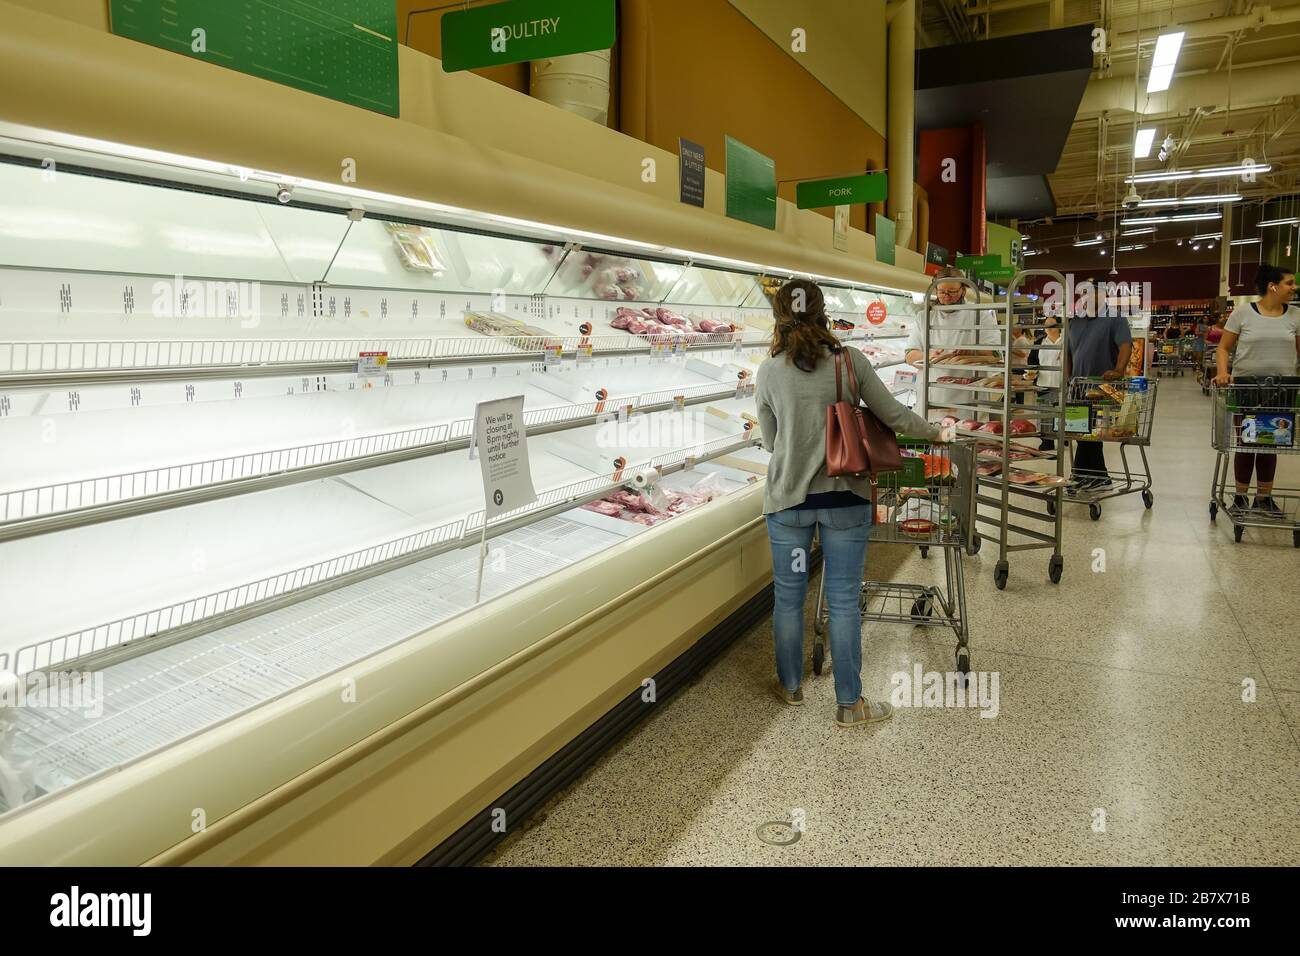 Orlando, FL/USA-3/14//20: Empty meat display shelves at a Publix grocery store due to the people panicking and hoarding paper and food products. Stock Photo